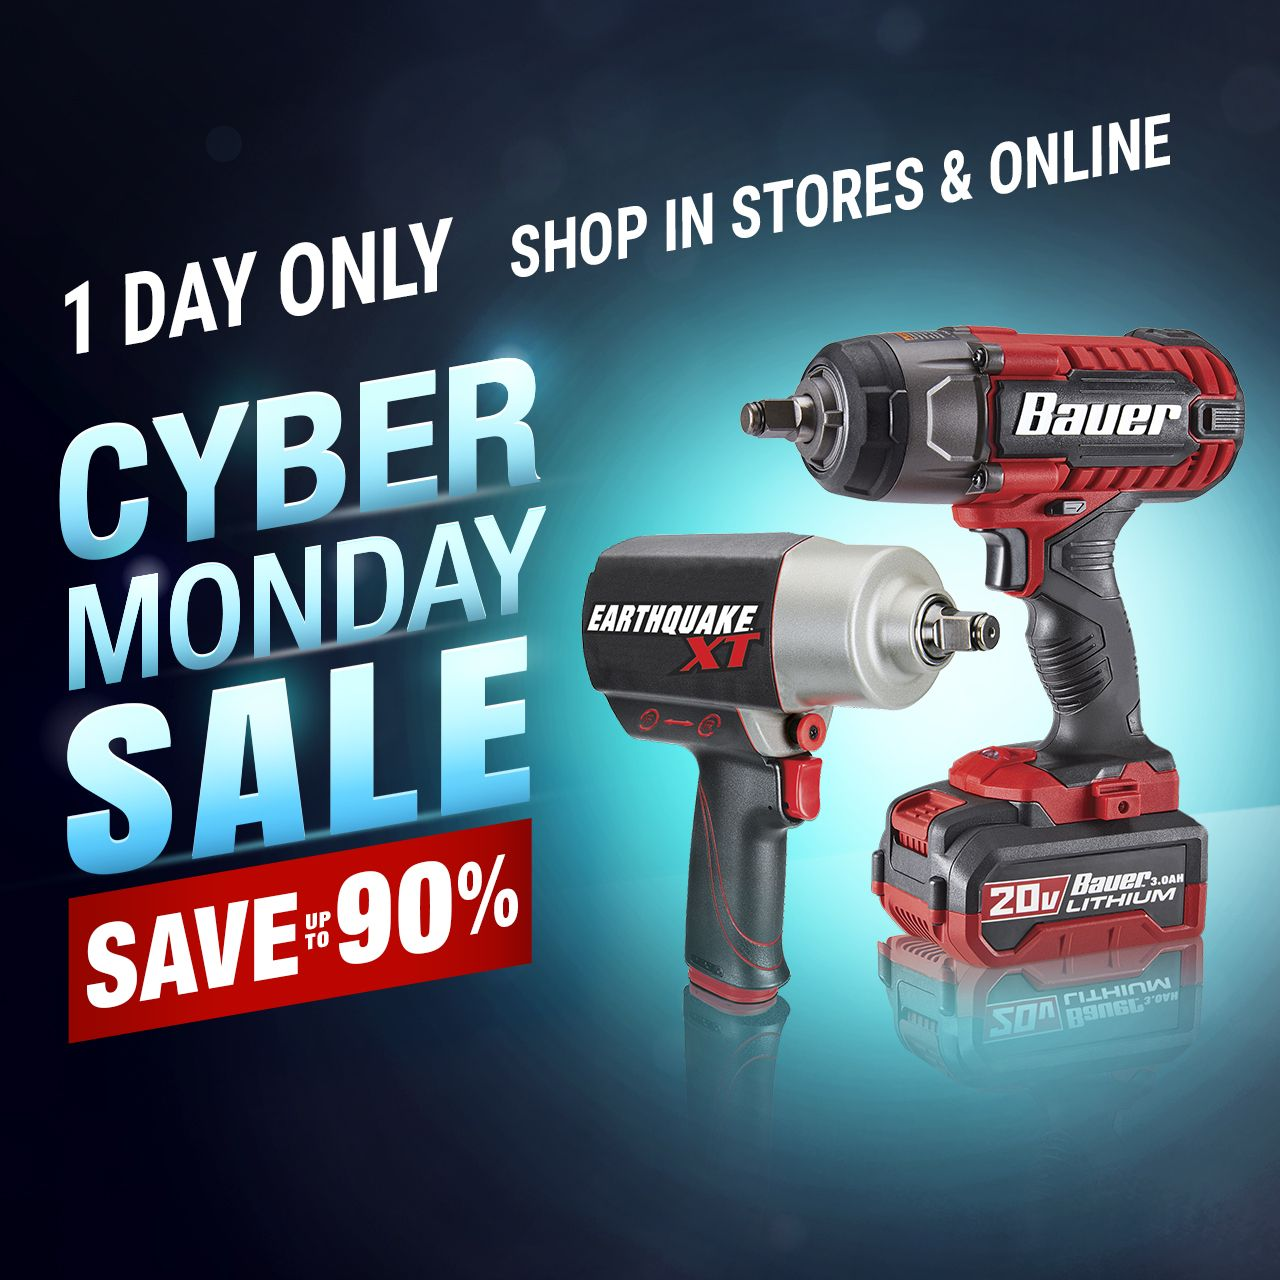 Cyber Monday Deals At Harbor Freight Harbor Freight Tools Cyber Monday Deals Cyber Monday